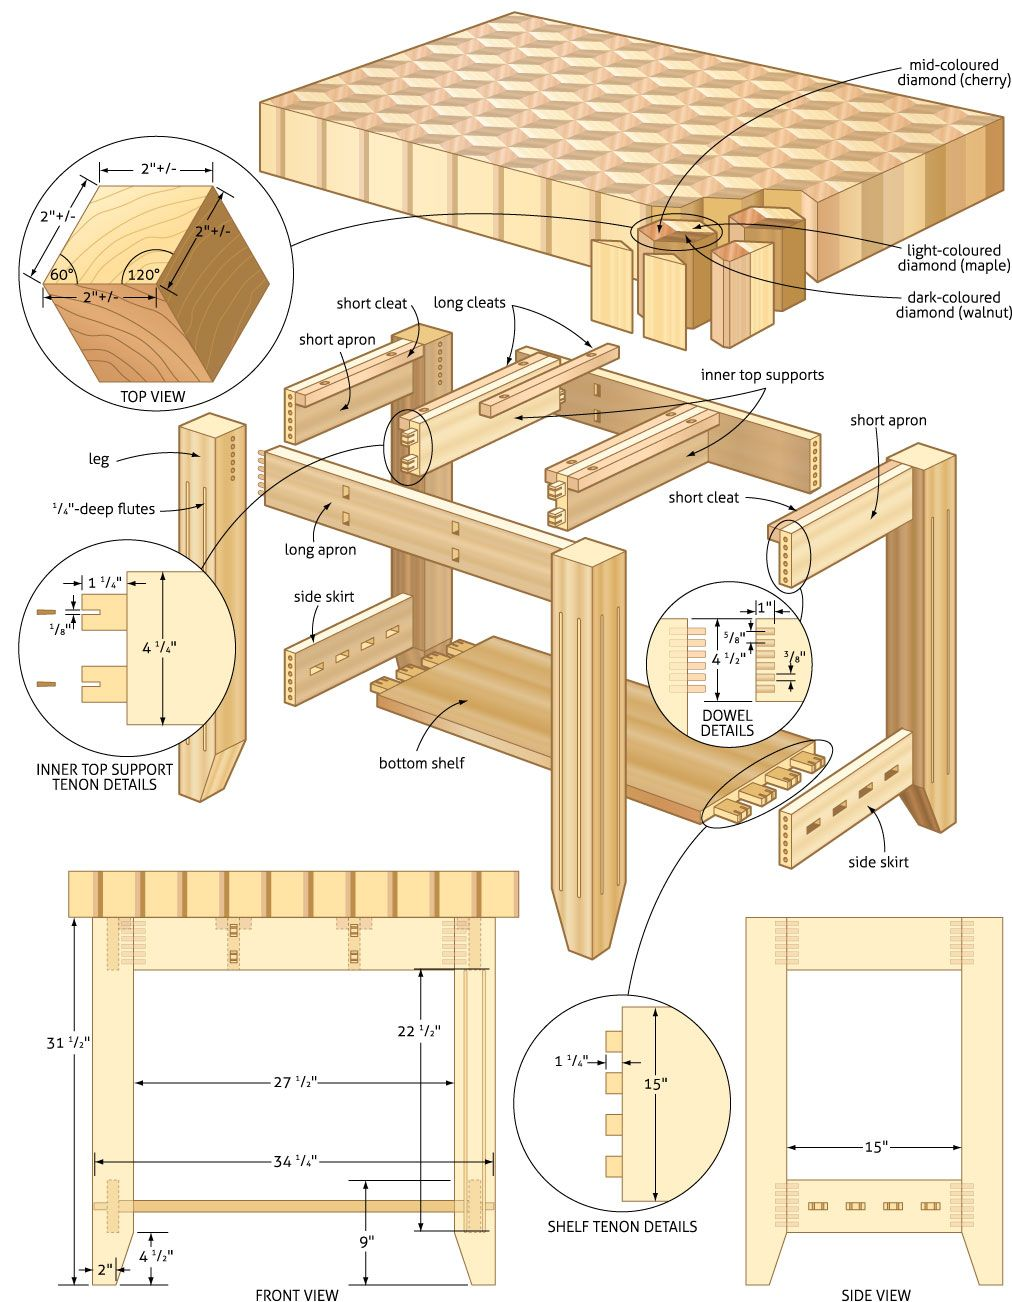 Teds Woodworking Review Wood Working Offers 16 000 Plans And Blueprints For Beginners To Advanced